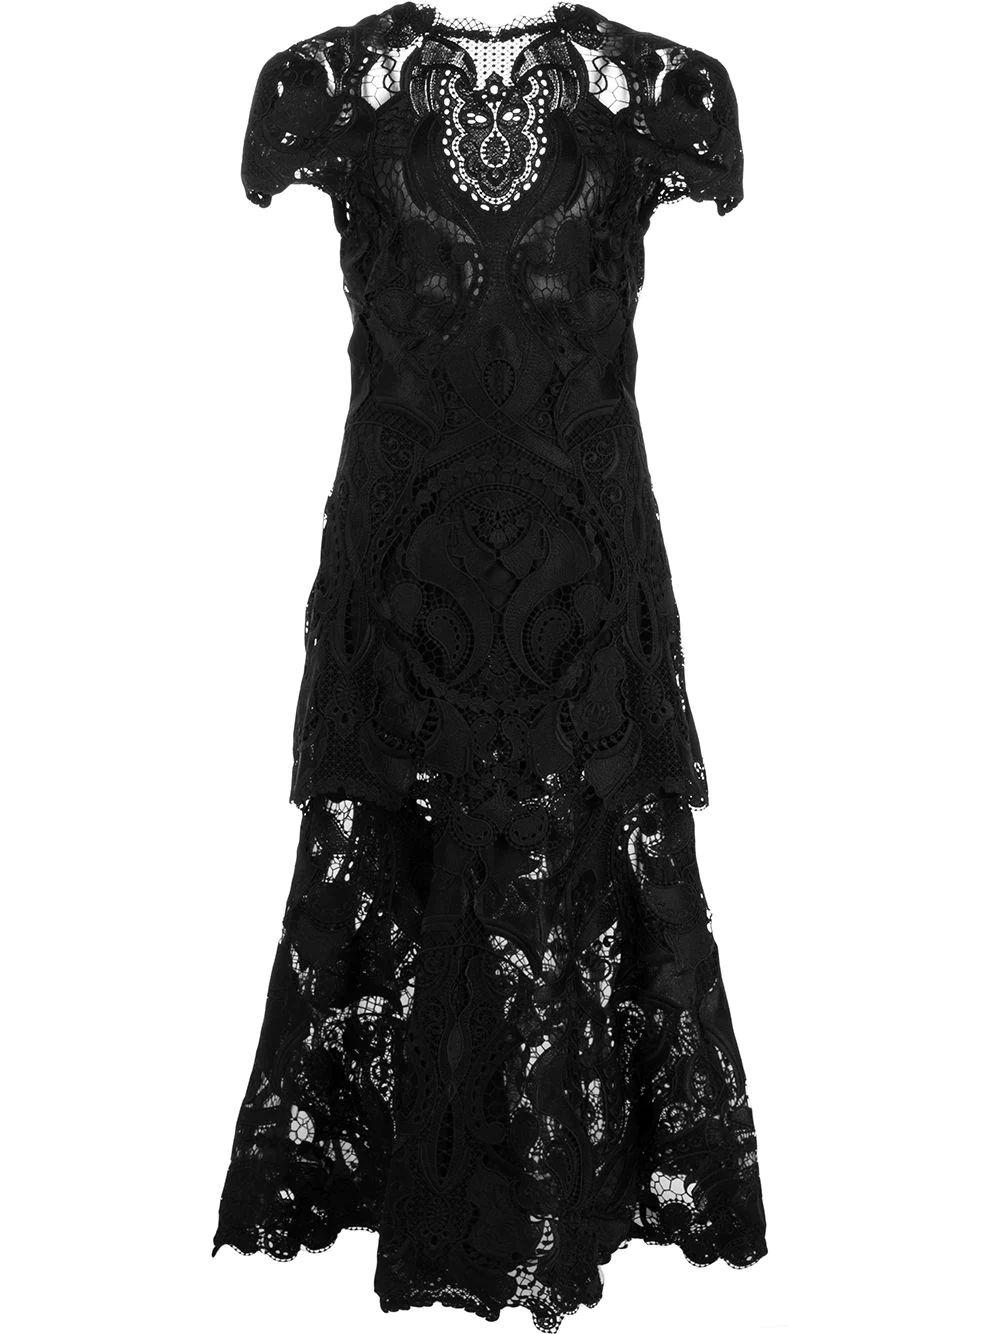 Giupure Lace Midi Dress